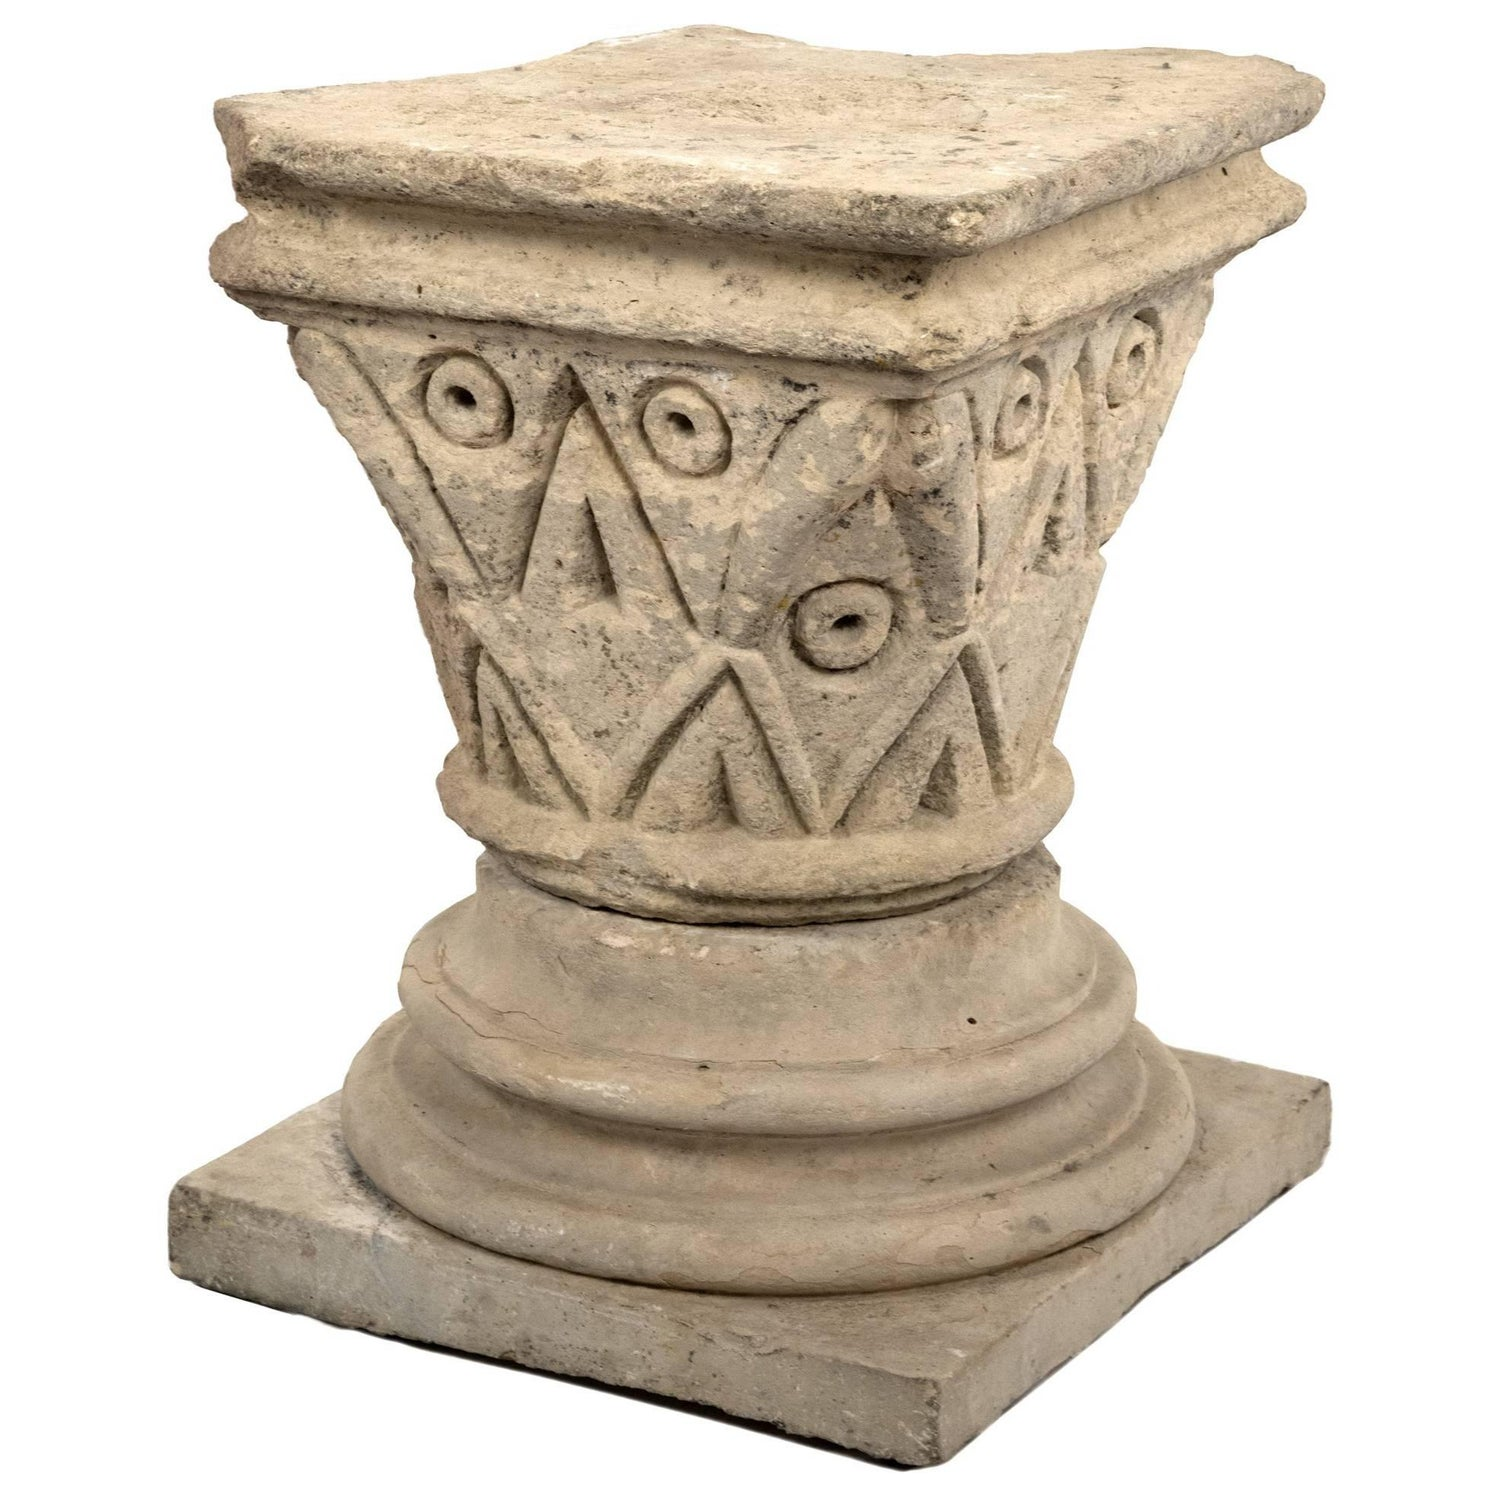 Unique Classical Roman Pedestals and Columns - 30 For Sale at 1stdibs PF62